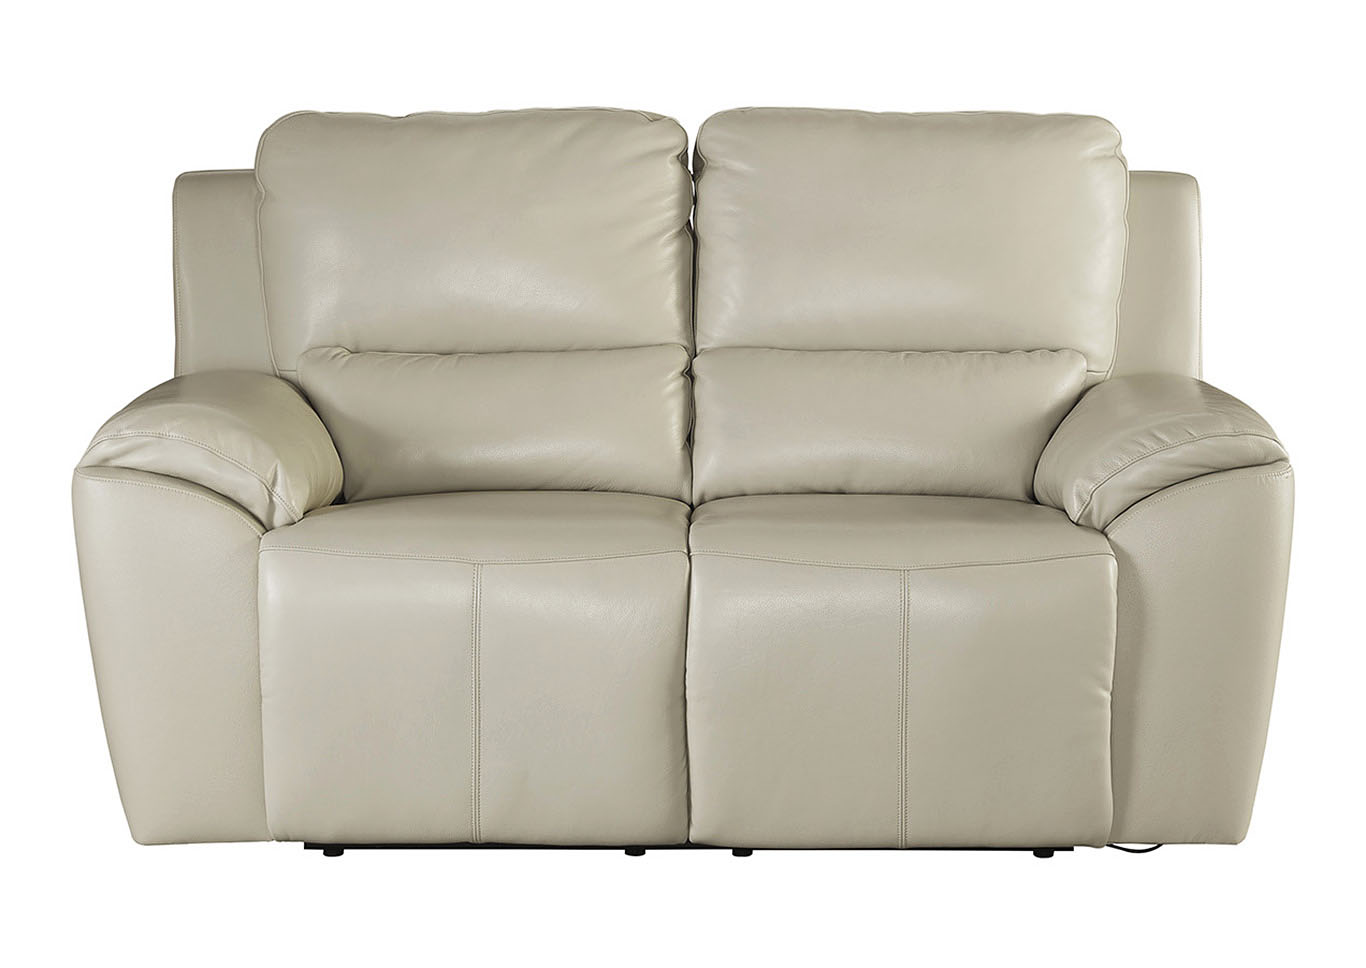 Valeton Cream Reclining Loveseat,Signature Design by Ashley